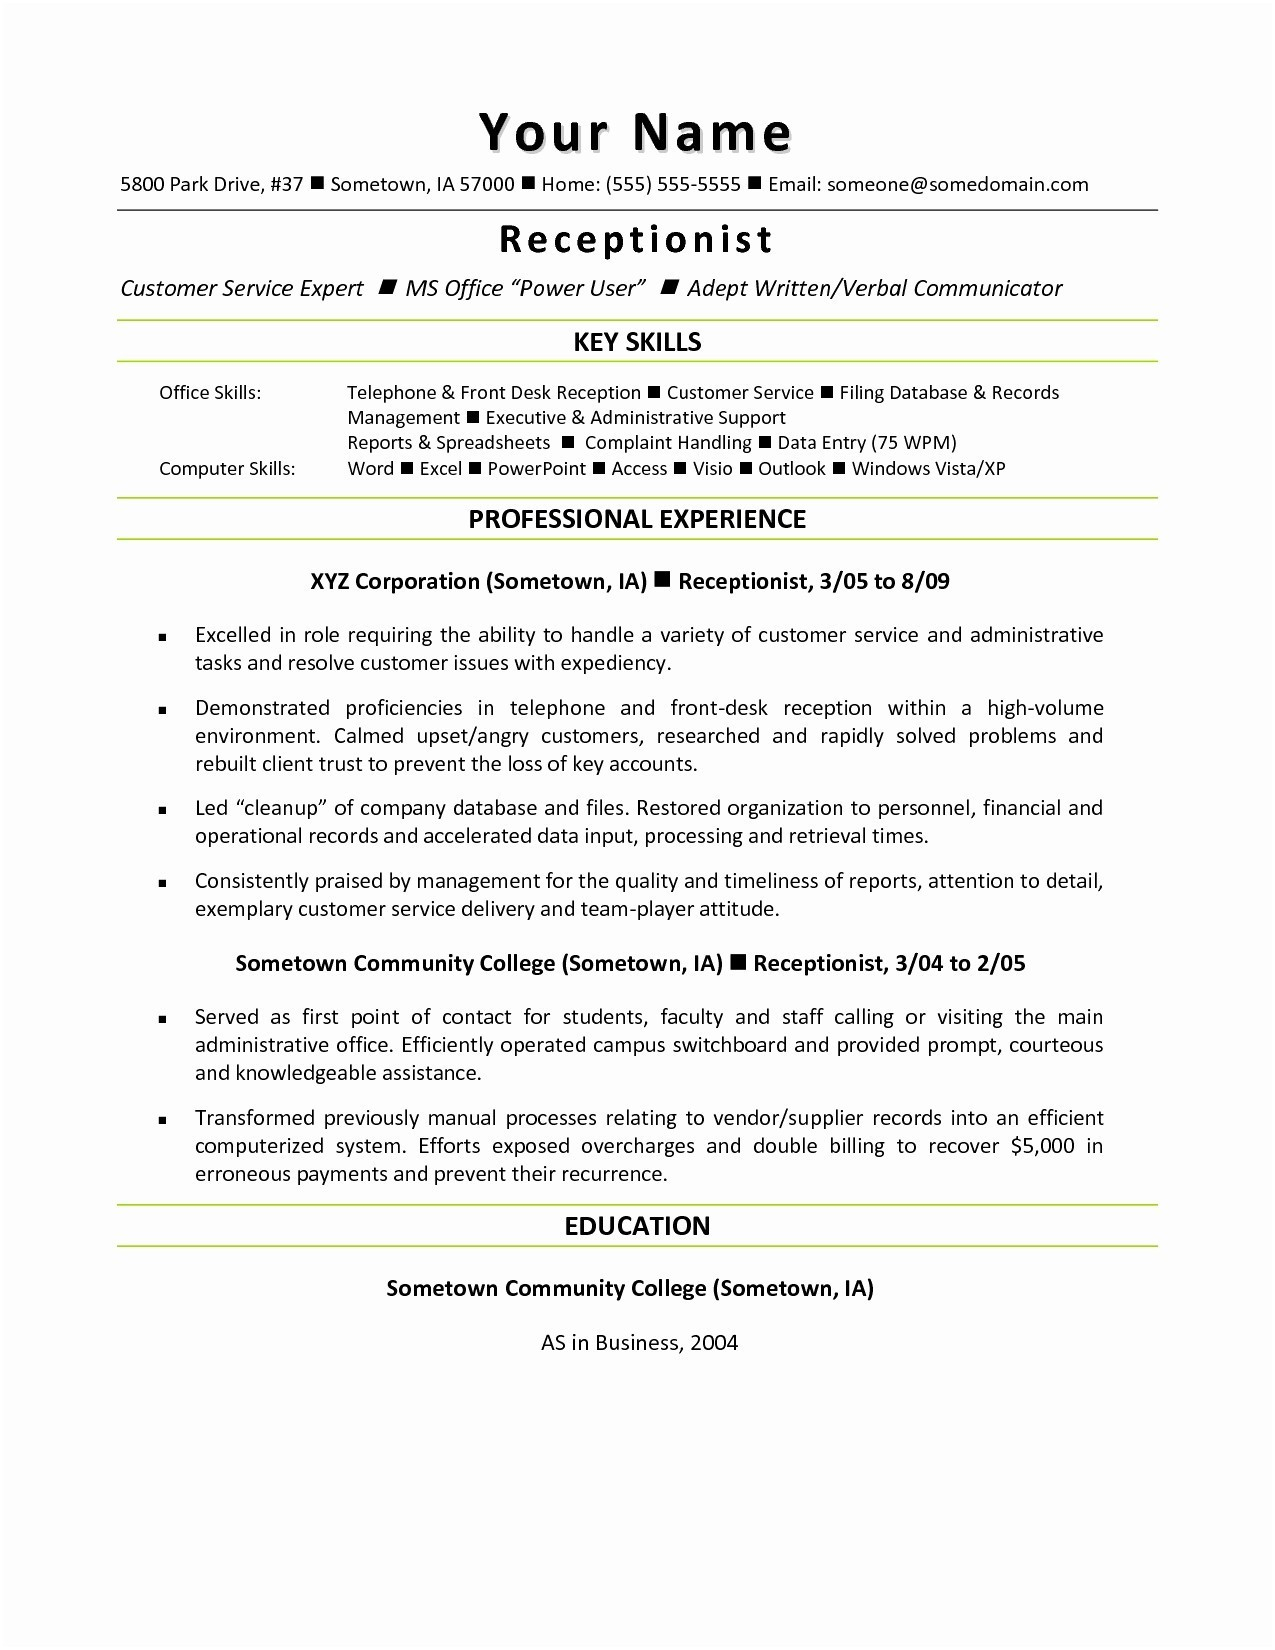 Cover Letter Template Microsoft Word 2010 - Resume Microsoft Word Fresh Resume Mail format Sample Fresh